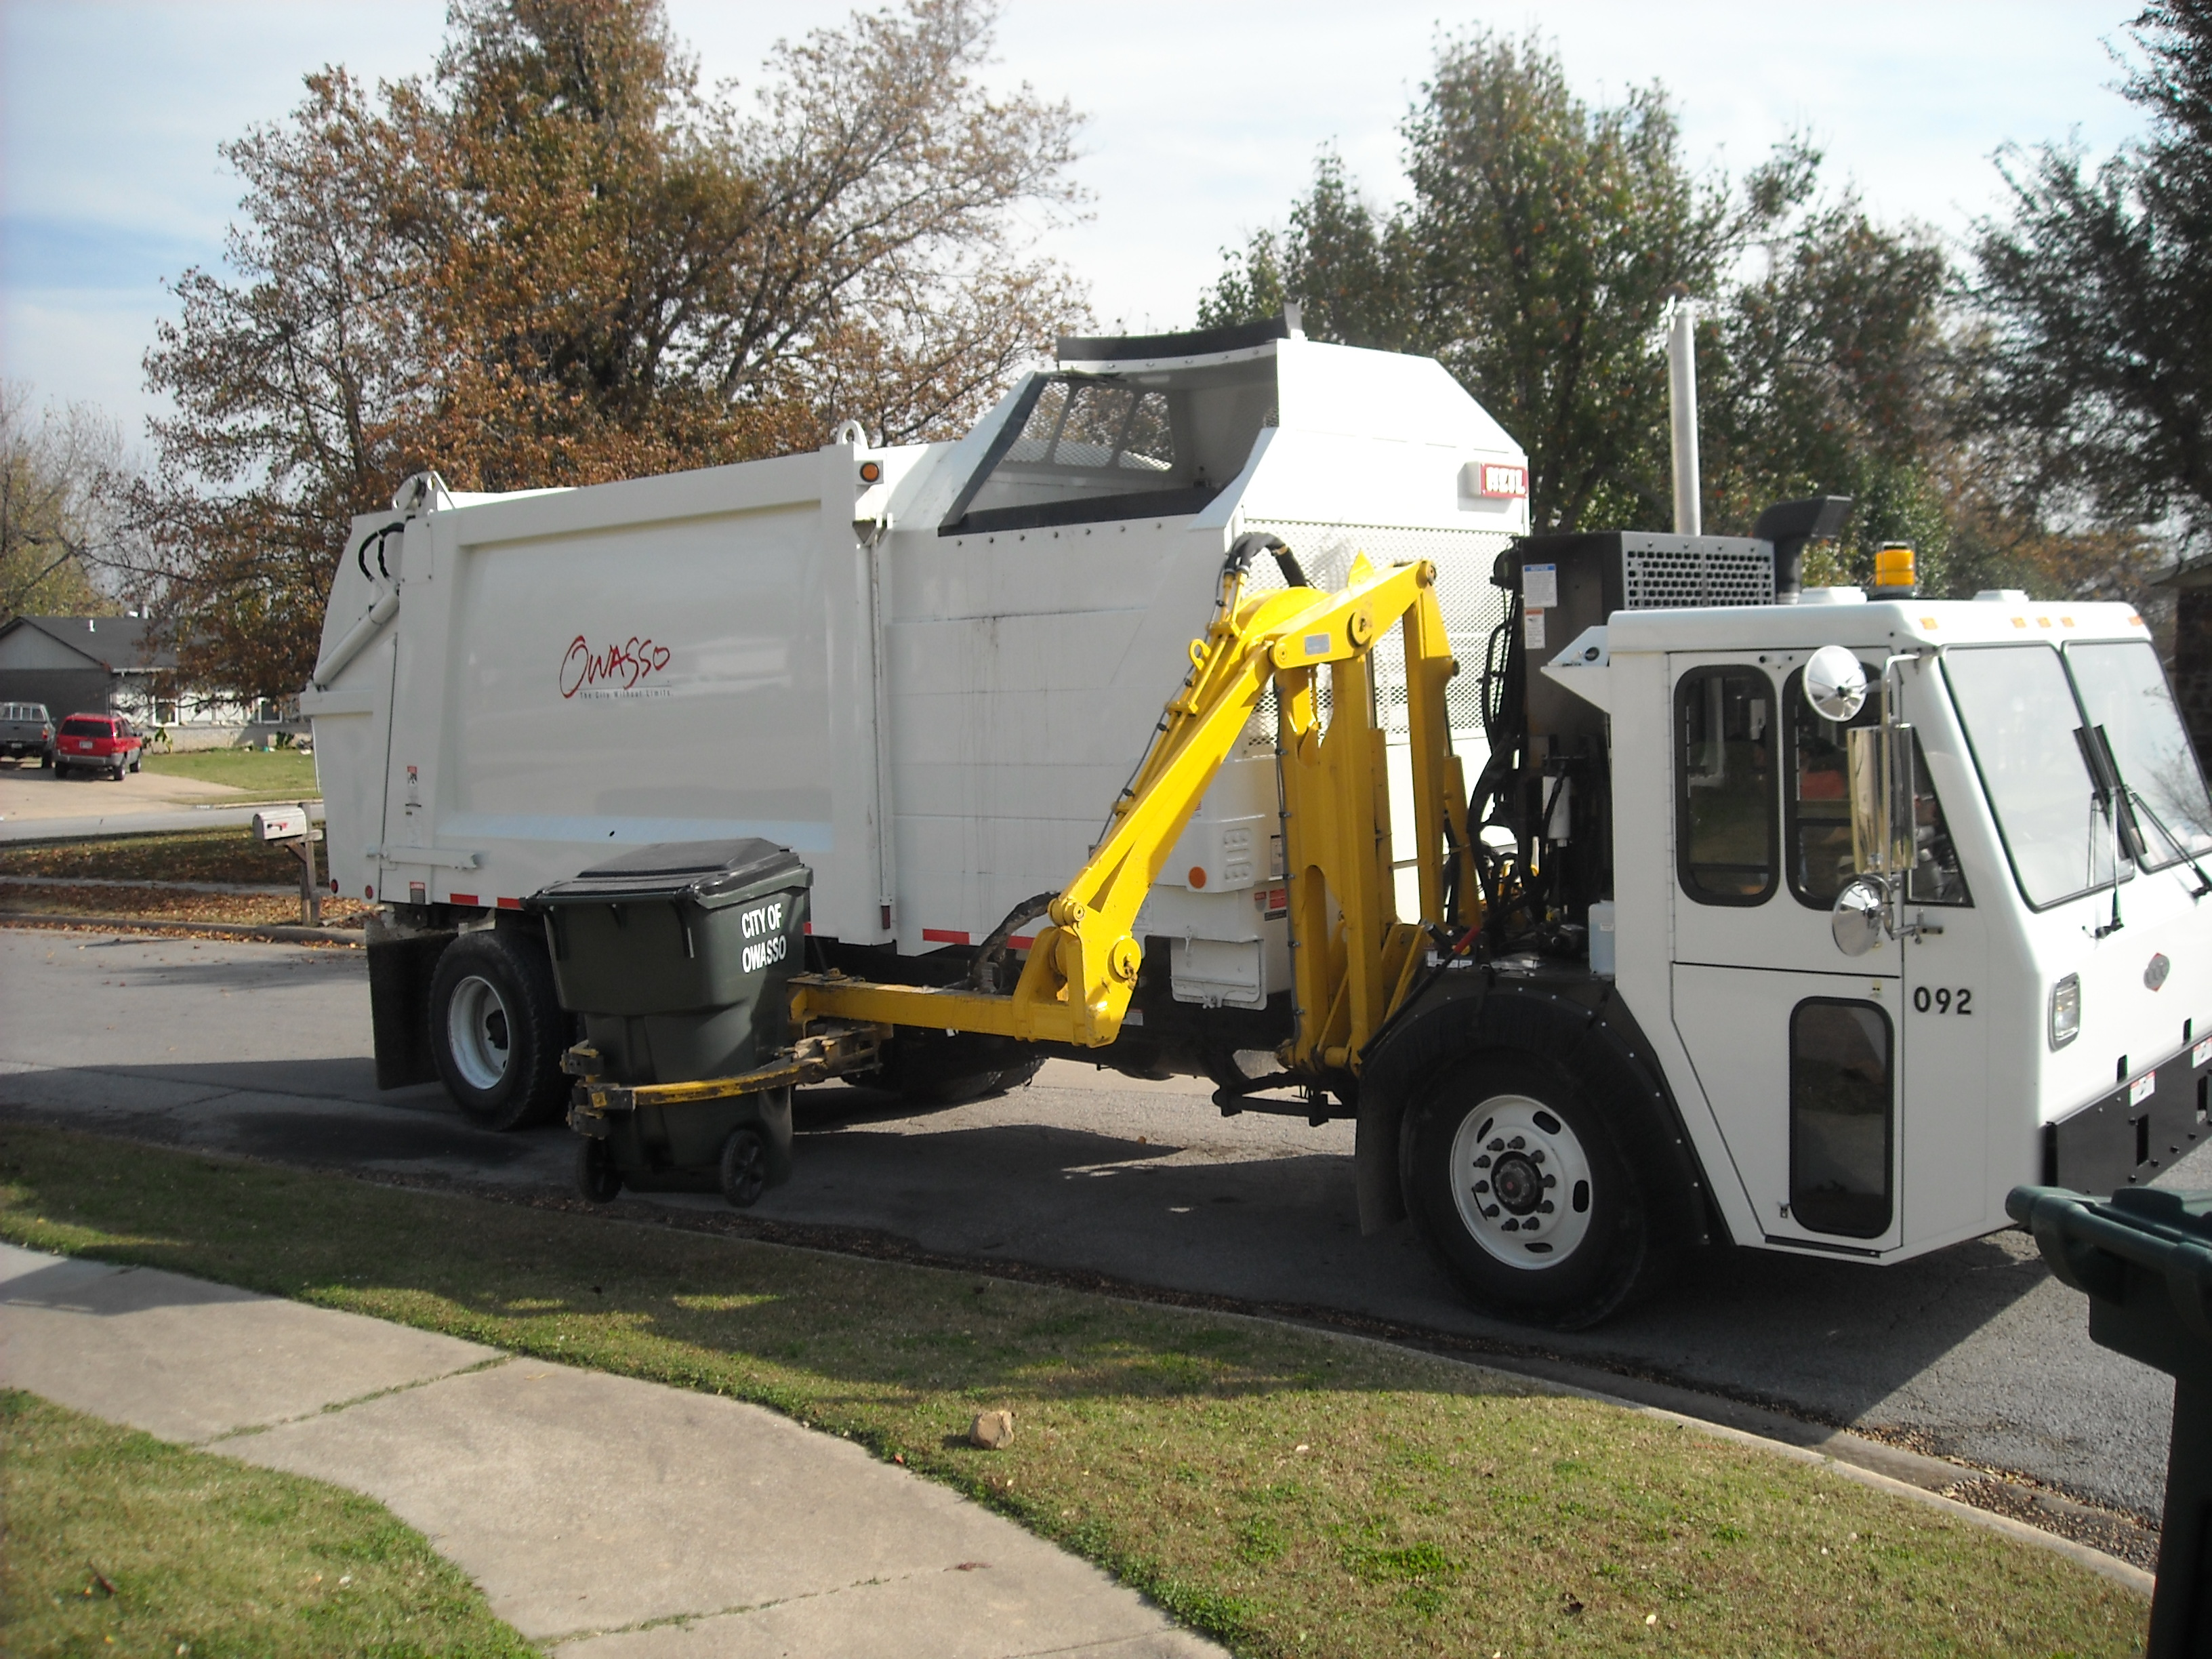 Trash and Yard Waste Collection Truck